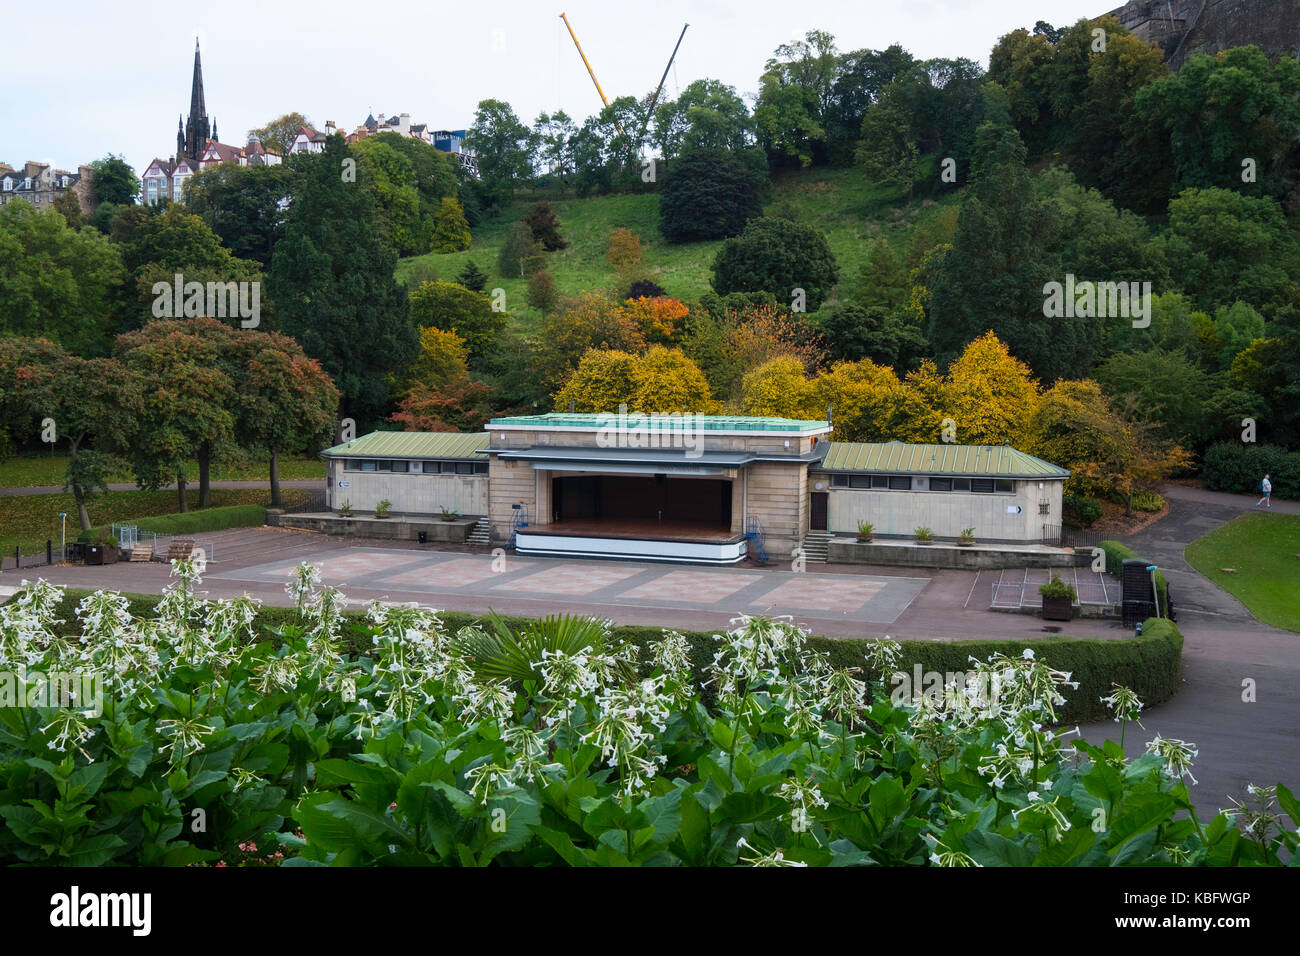 View of old Ross Theatre or bandstand in Prices Street Gardens. A new bandstand is being planned to replace it, - Stock Image